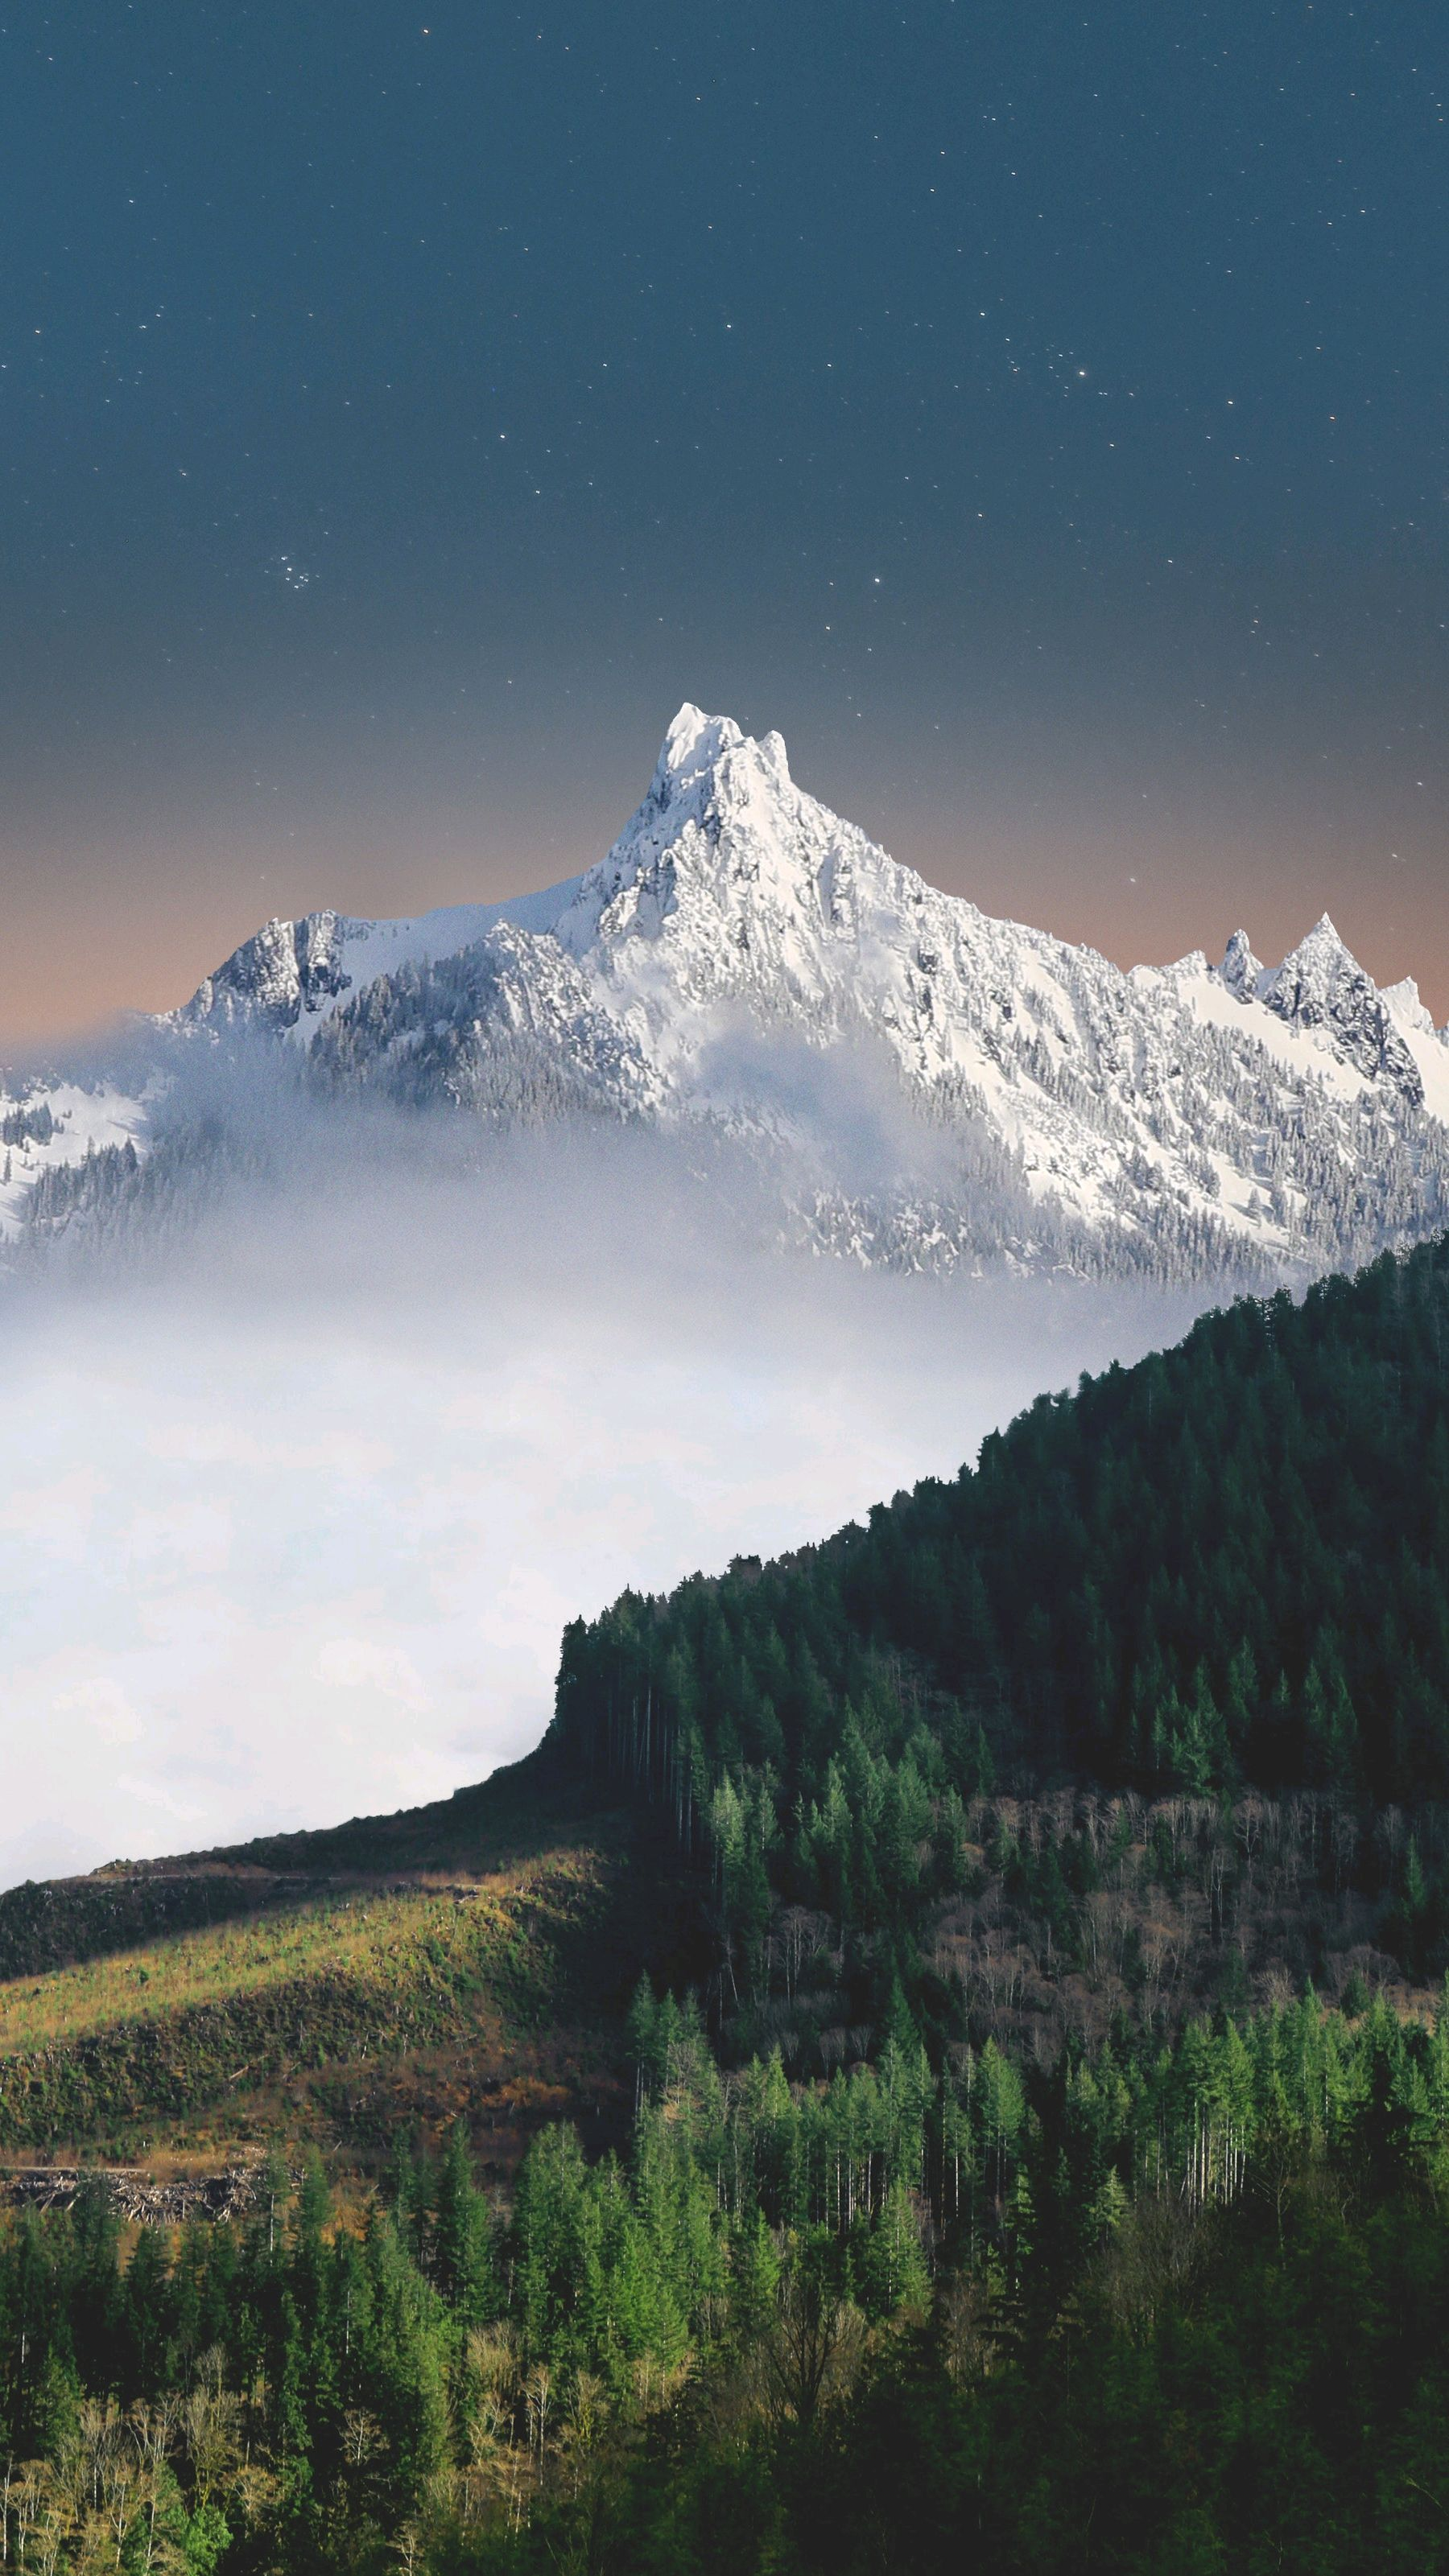 Love Cute Wallpaper Free Download Snow Mountains Green Forest Nature Scenery Iphone